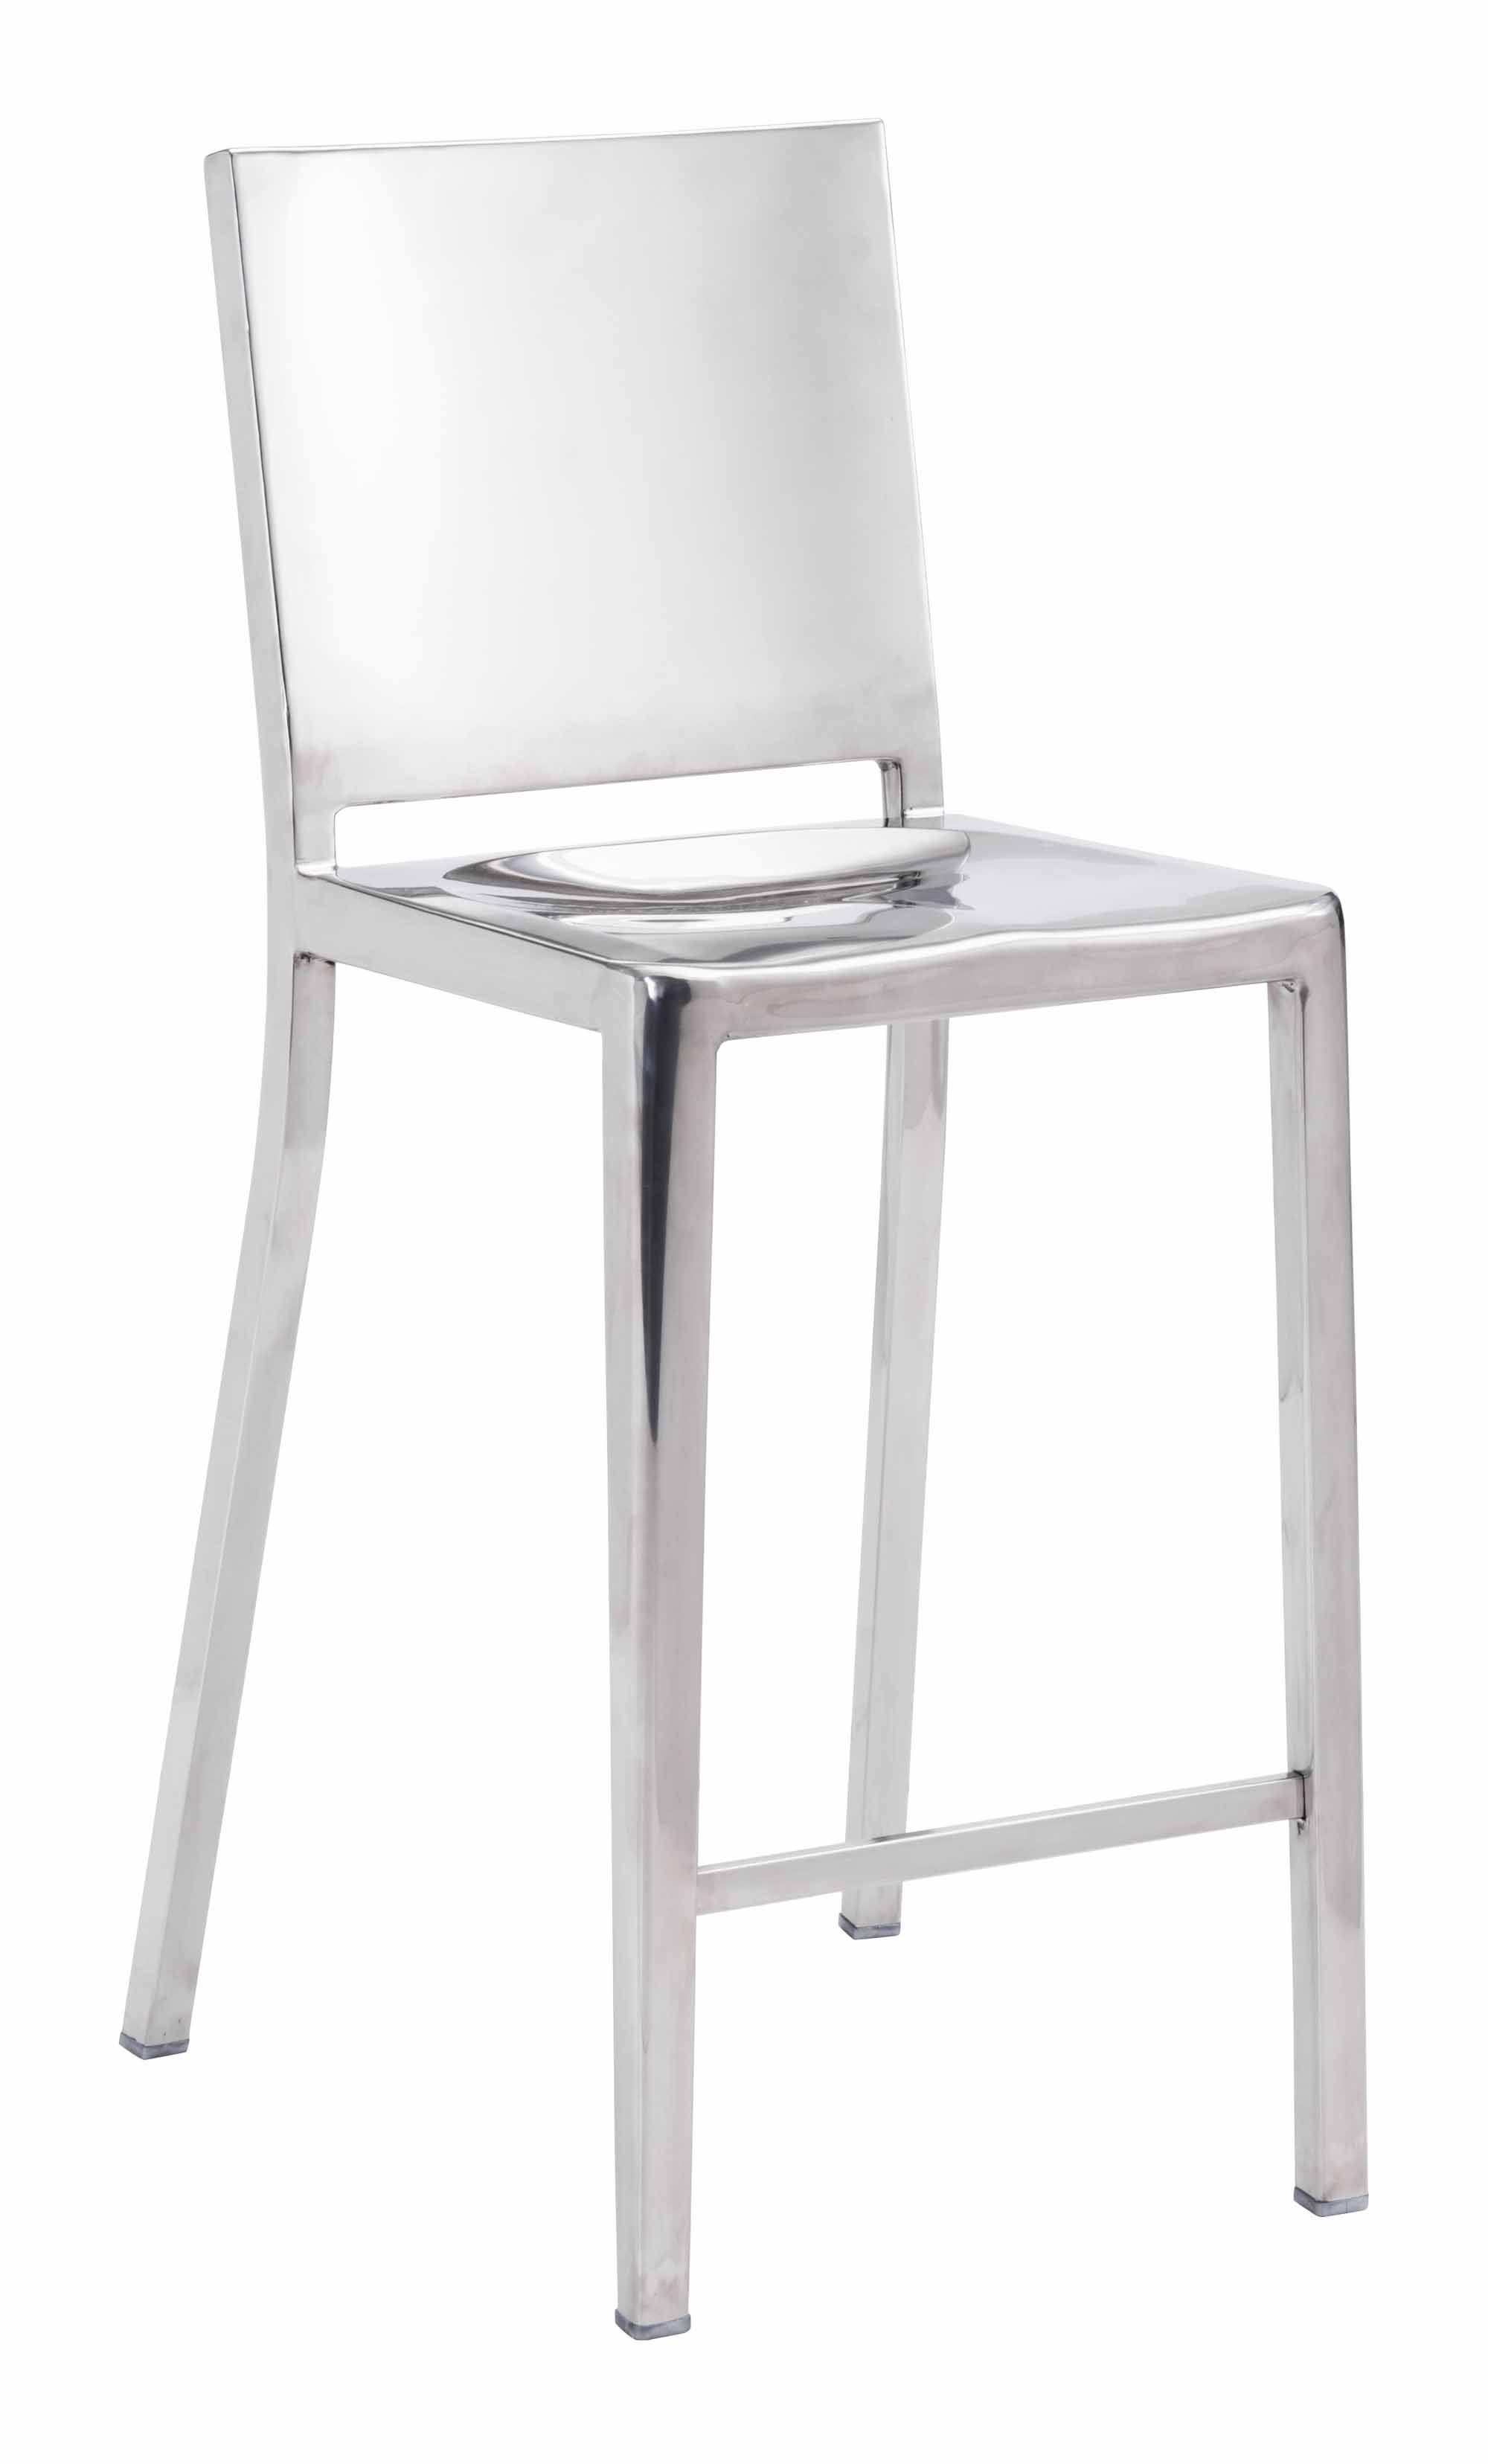 Fall Counter Chair Stainless Steel Set Of 2 By Zuo Modern